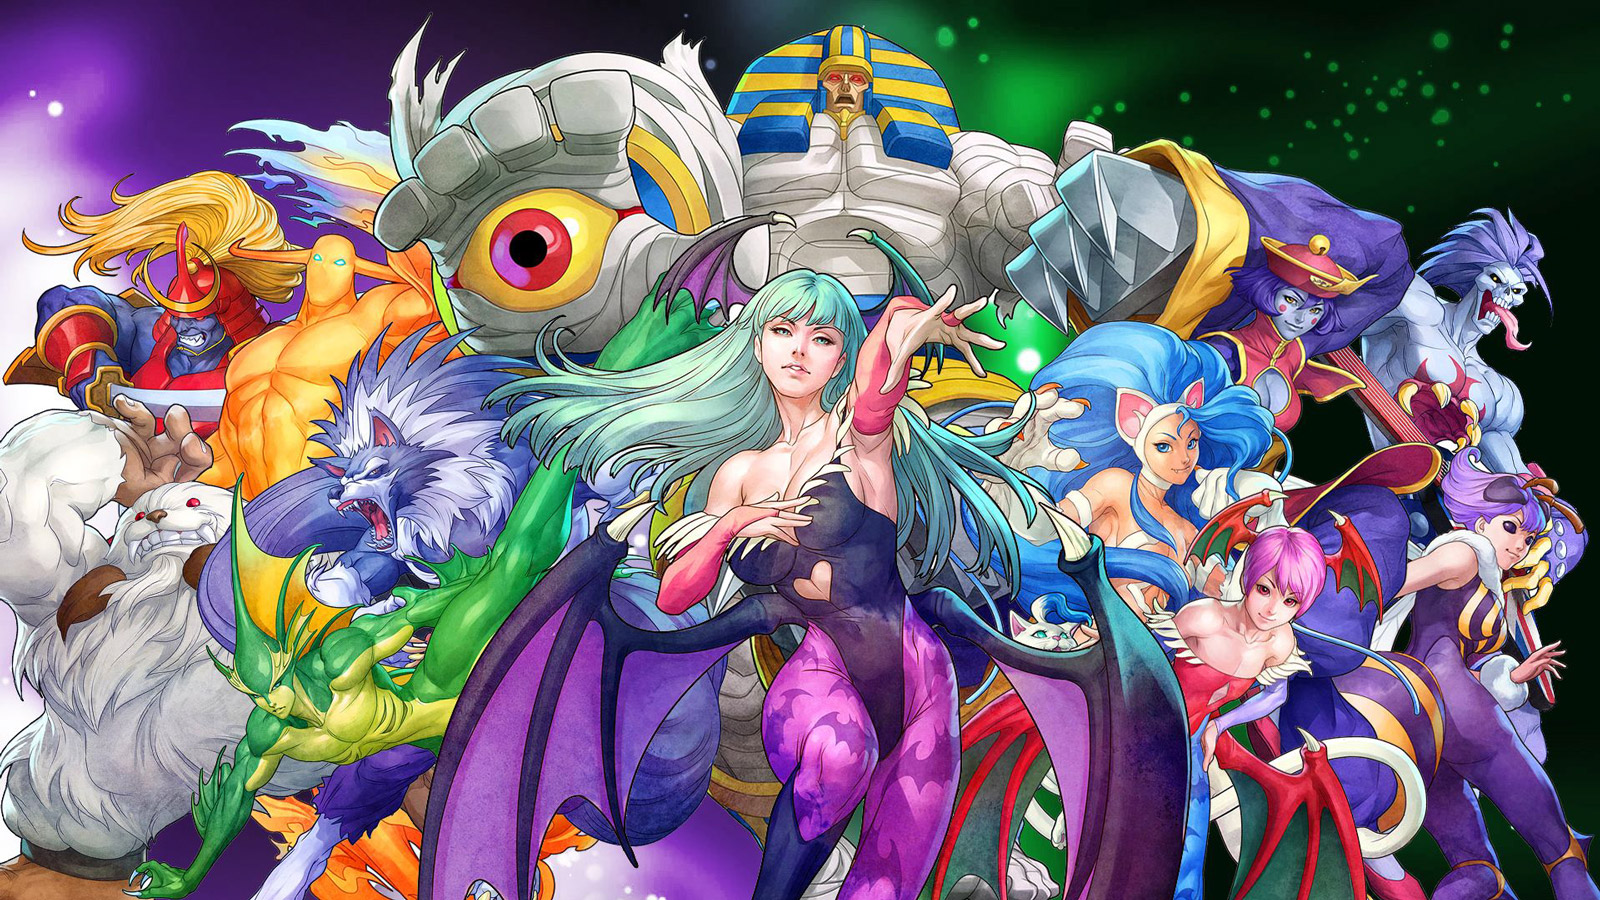 Darkstalkers Resurrection Wallpaper in 1600x900